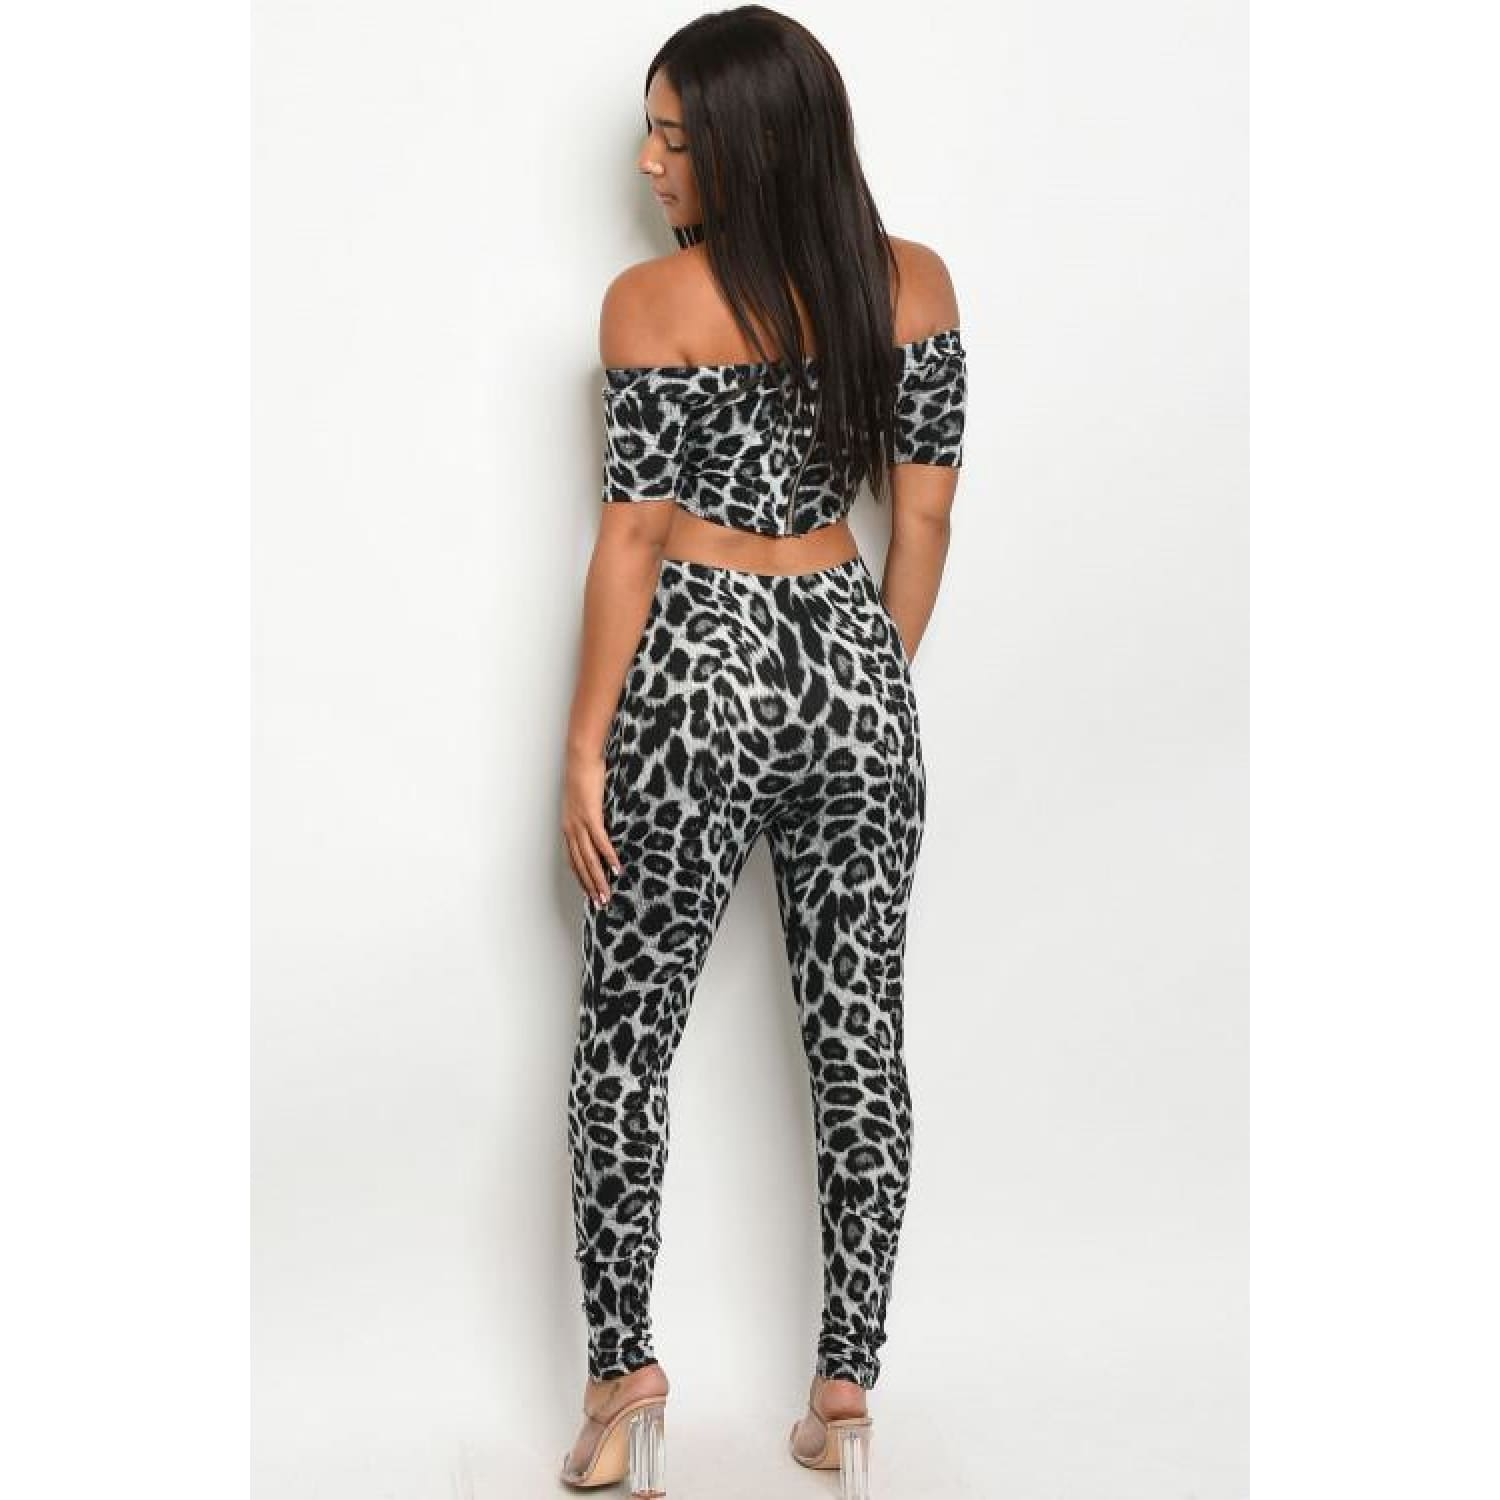 Black and Gray Animal Print Set - OUTFITS